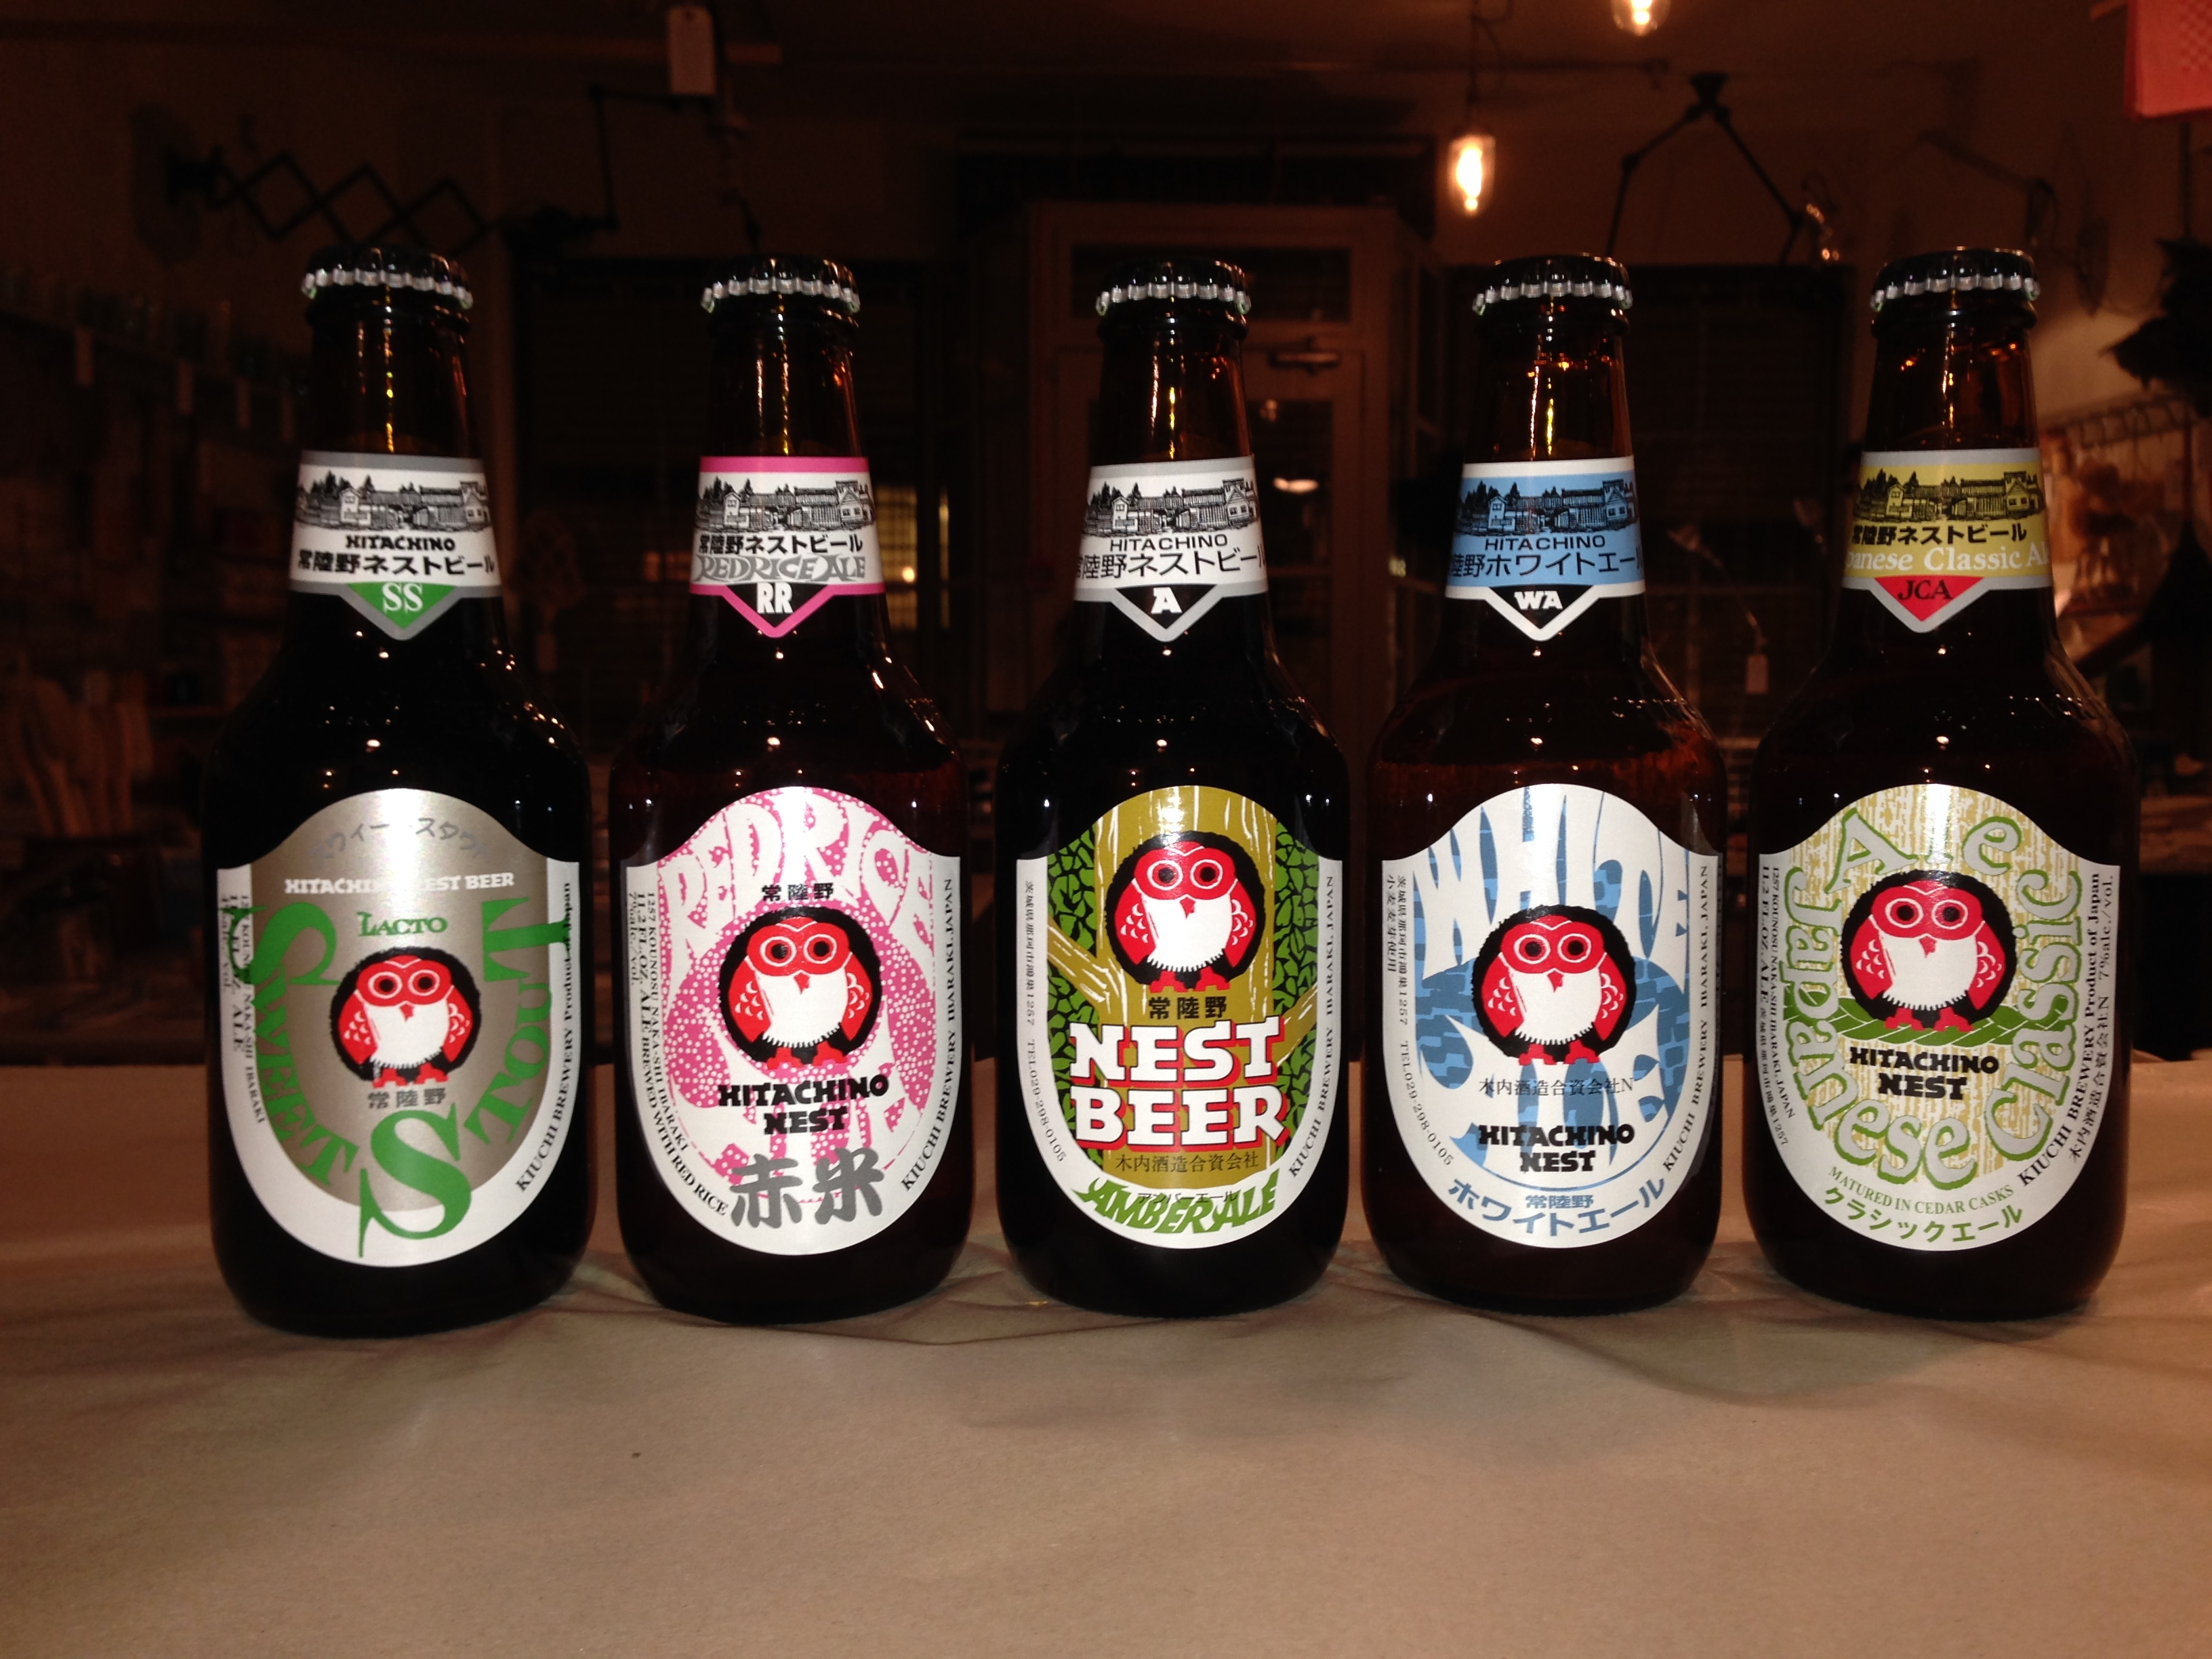 A fine selection of Japanese Nest beers